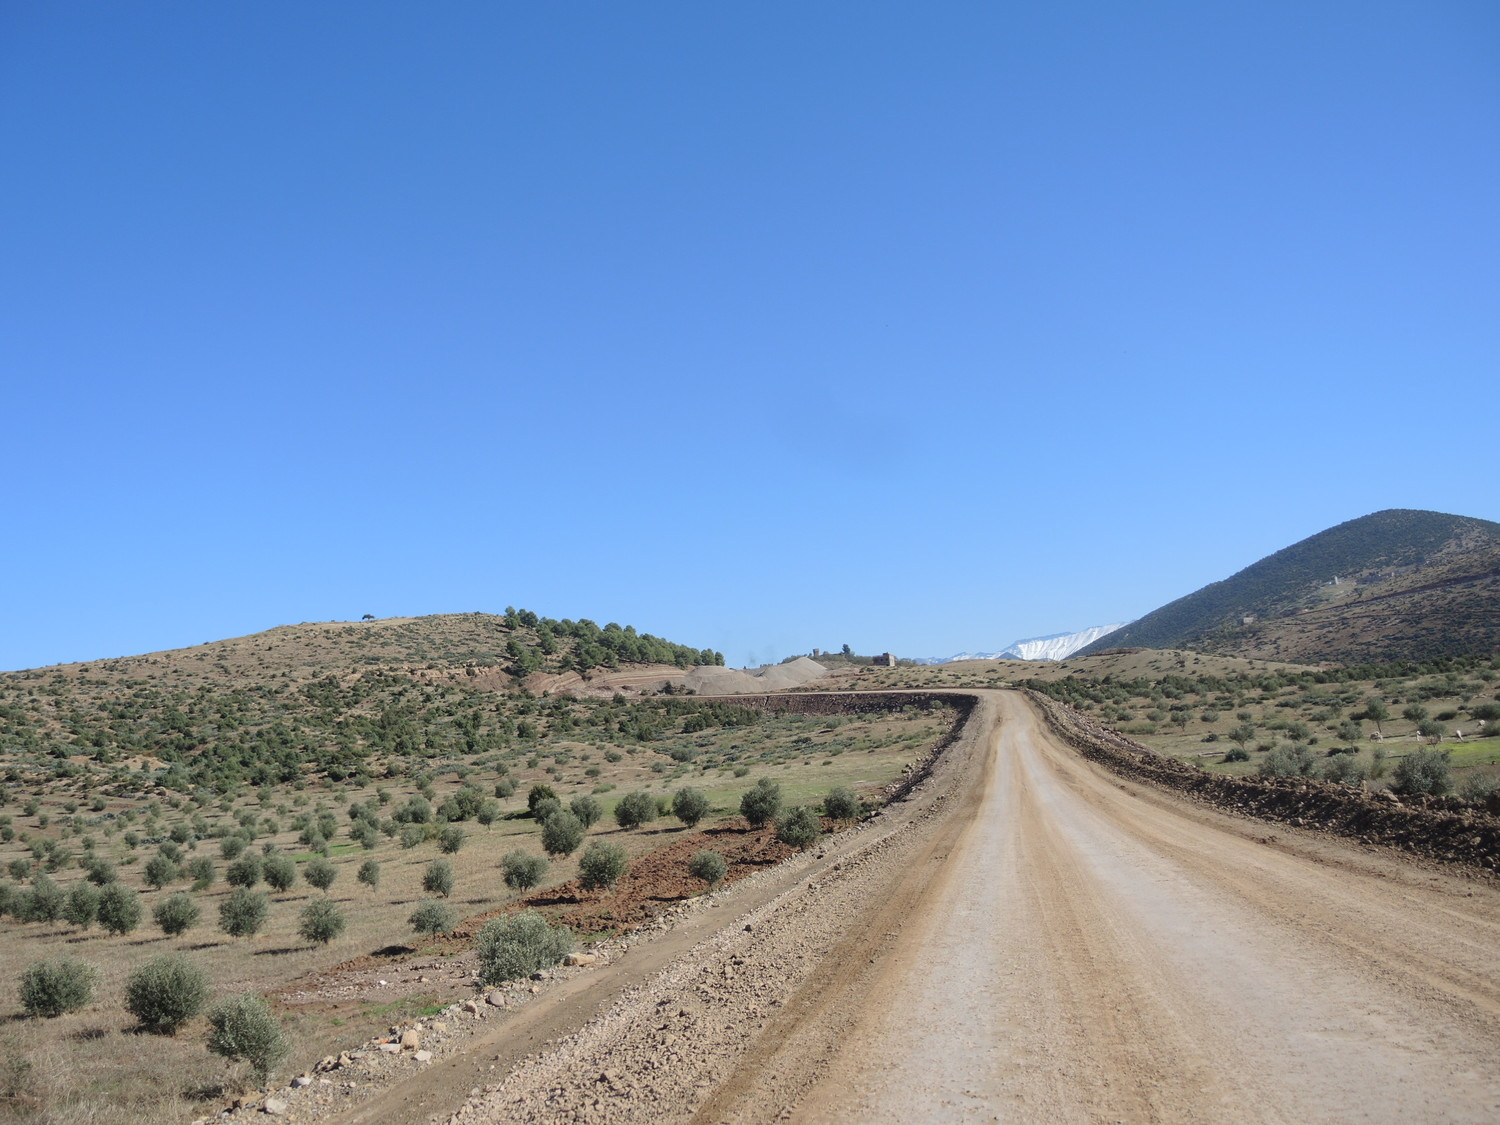 Wide road near the Atlas Mountains